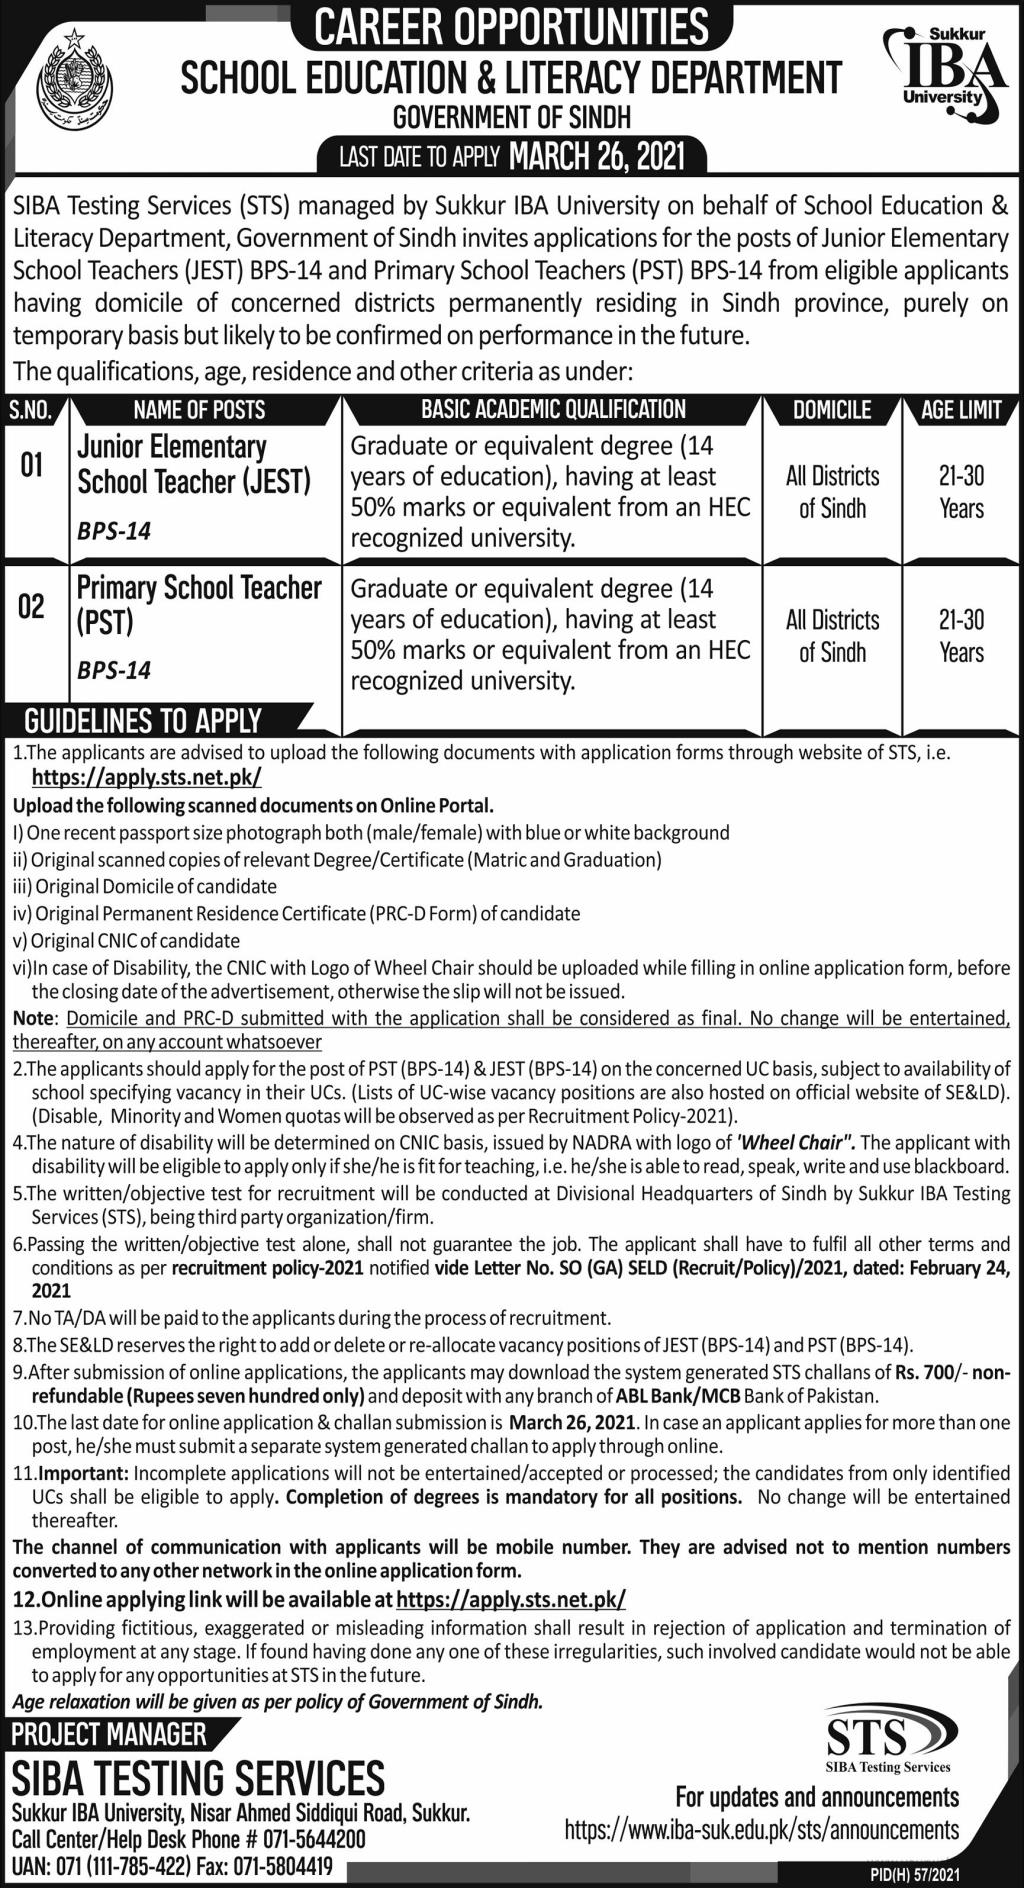 STS School Education & Literacy Department Sindh JEST Jobs 2021 Advertisement